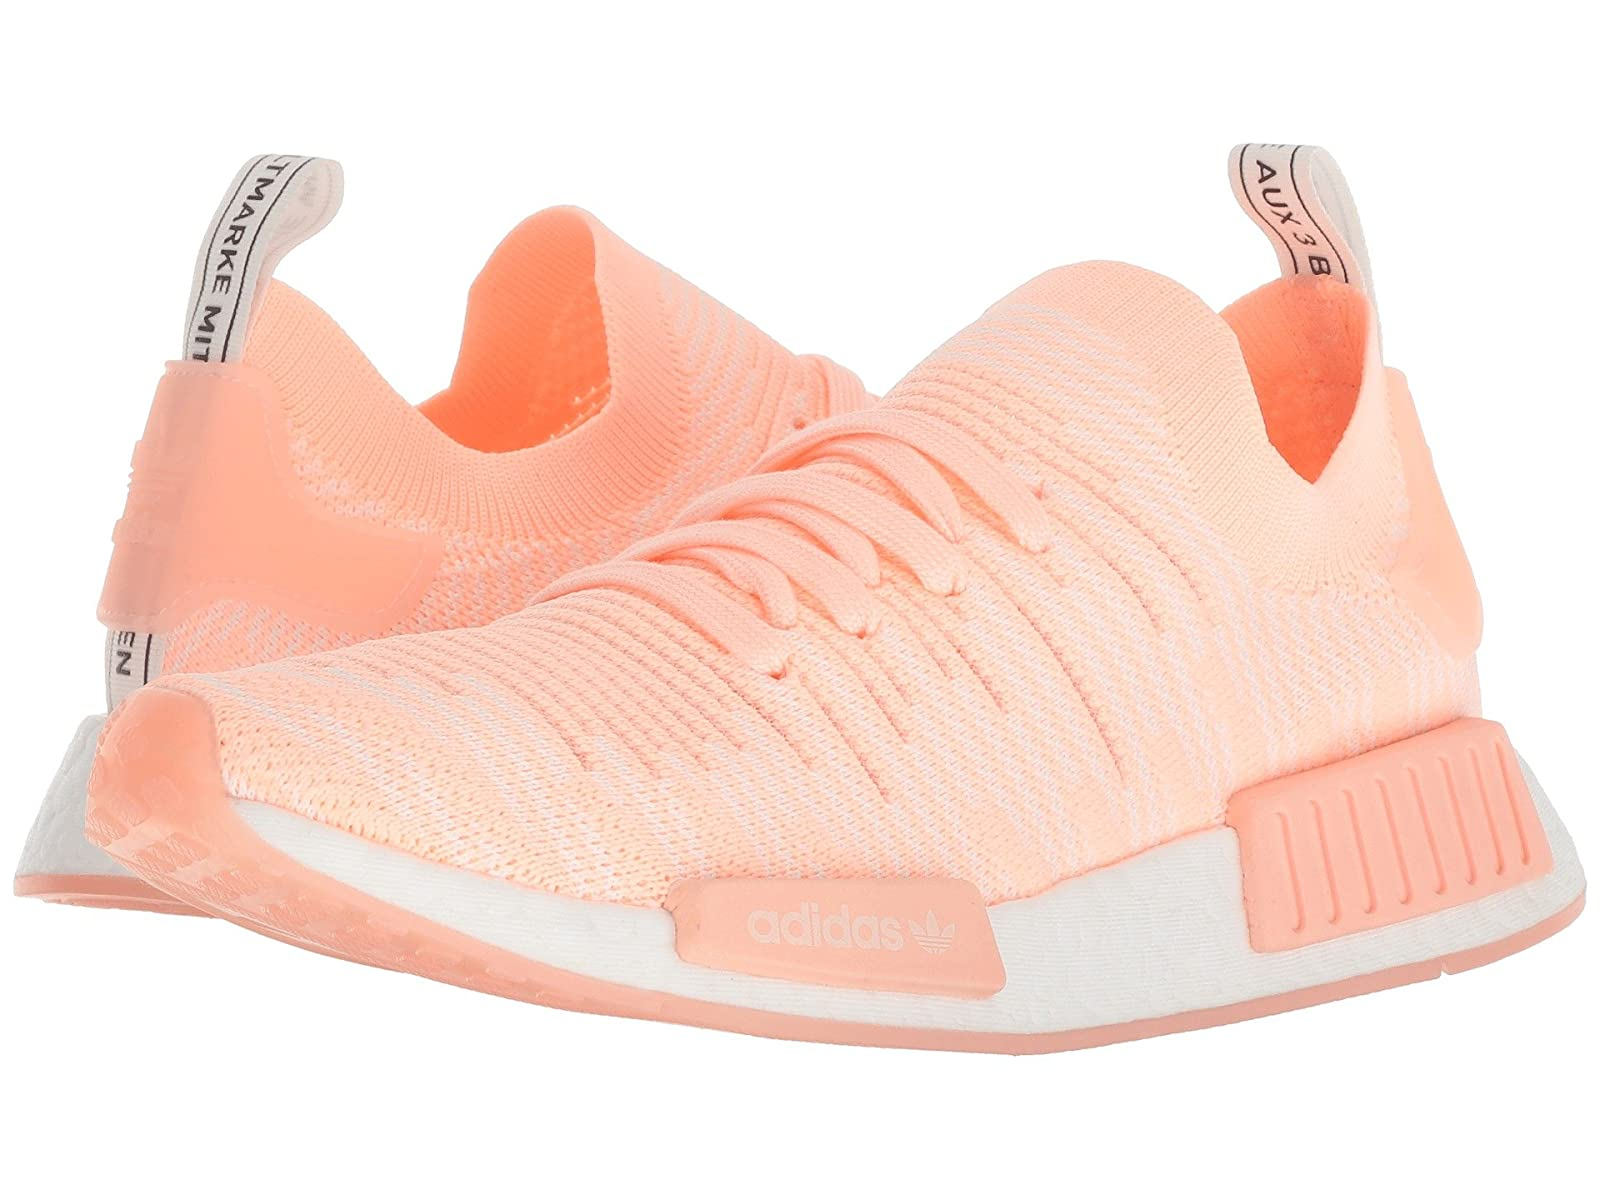 adidas Originals NMD_R1Atmospheric grades have affordable shoes